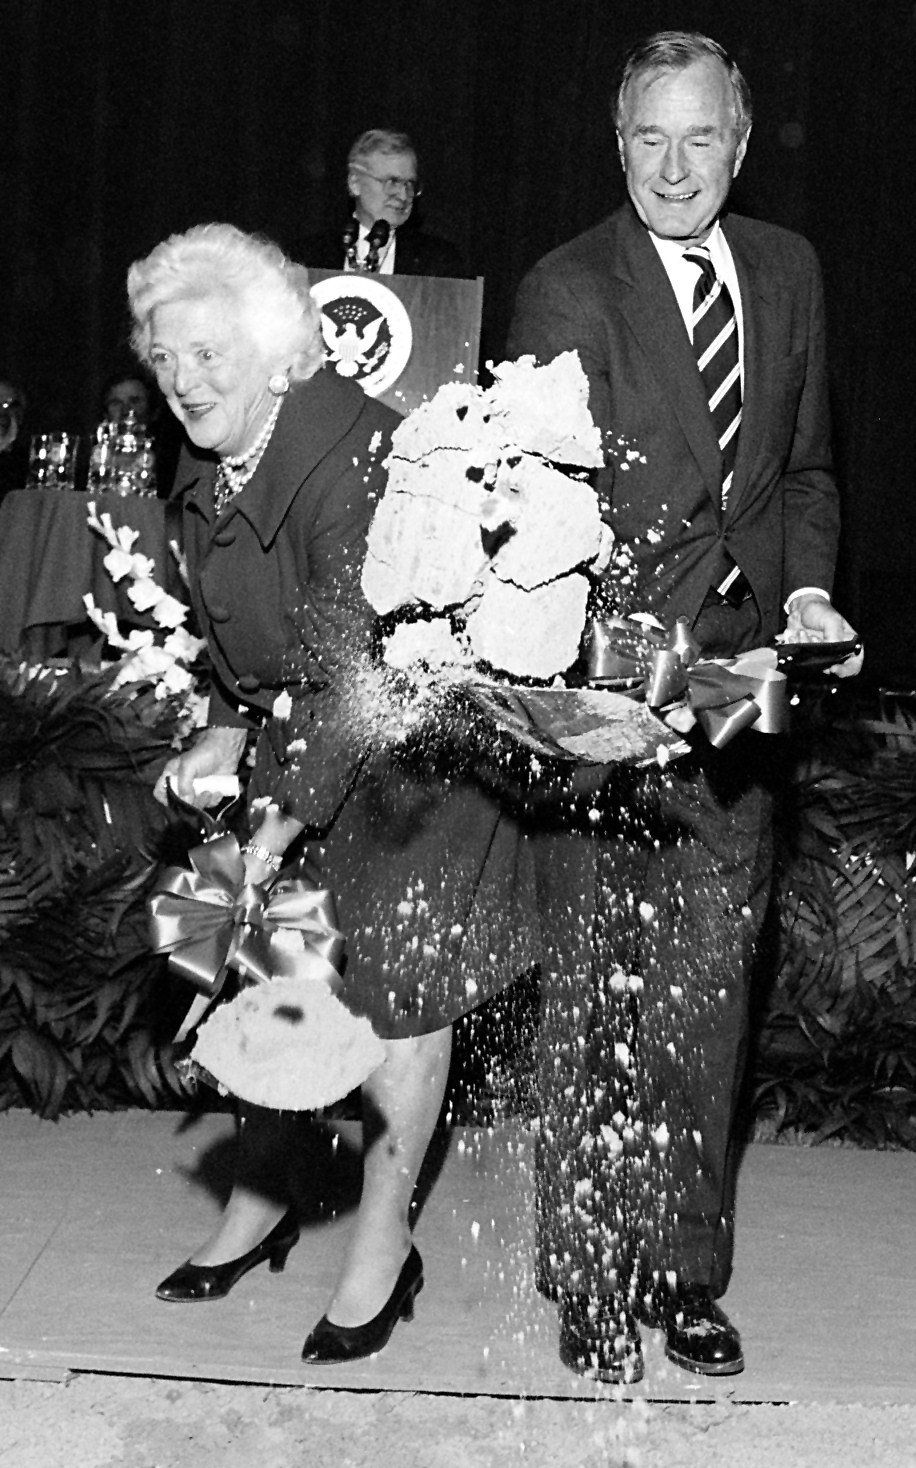 1994: Former President George Bush and first lady Barbara Bush take part in the groundbreaking ceremony launching construction of the George Bush Presidential Library Center at Texas A&M University in College Station, Texas.